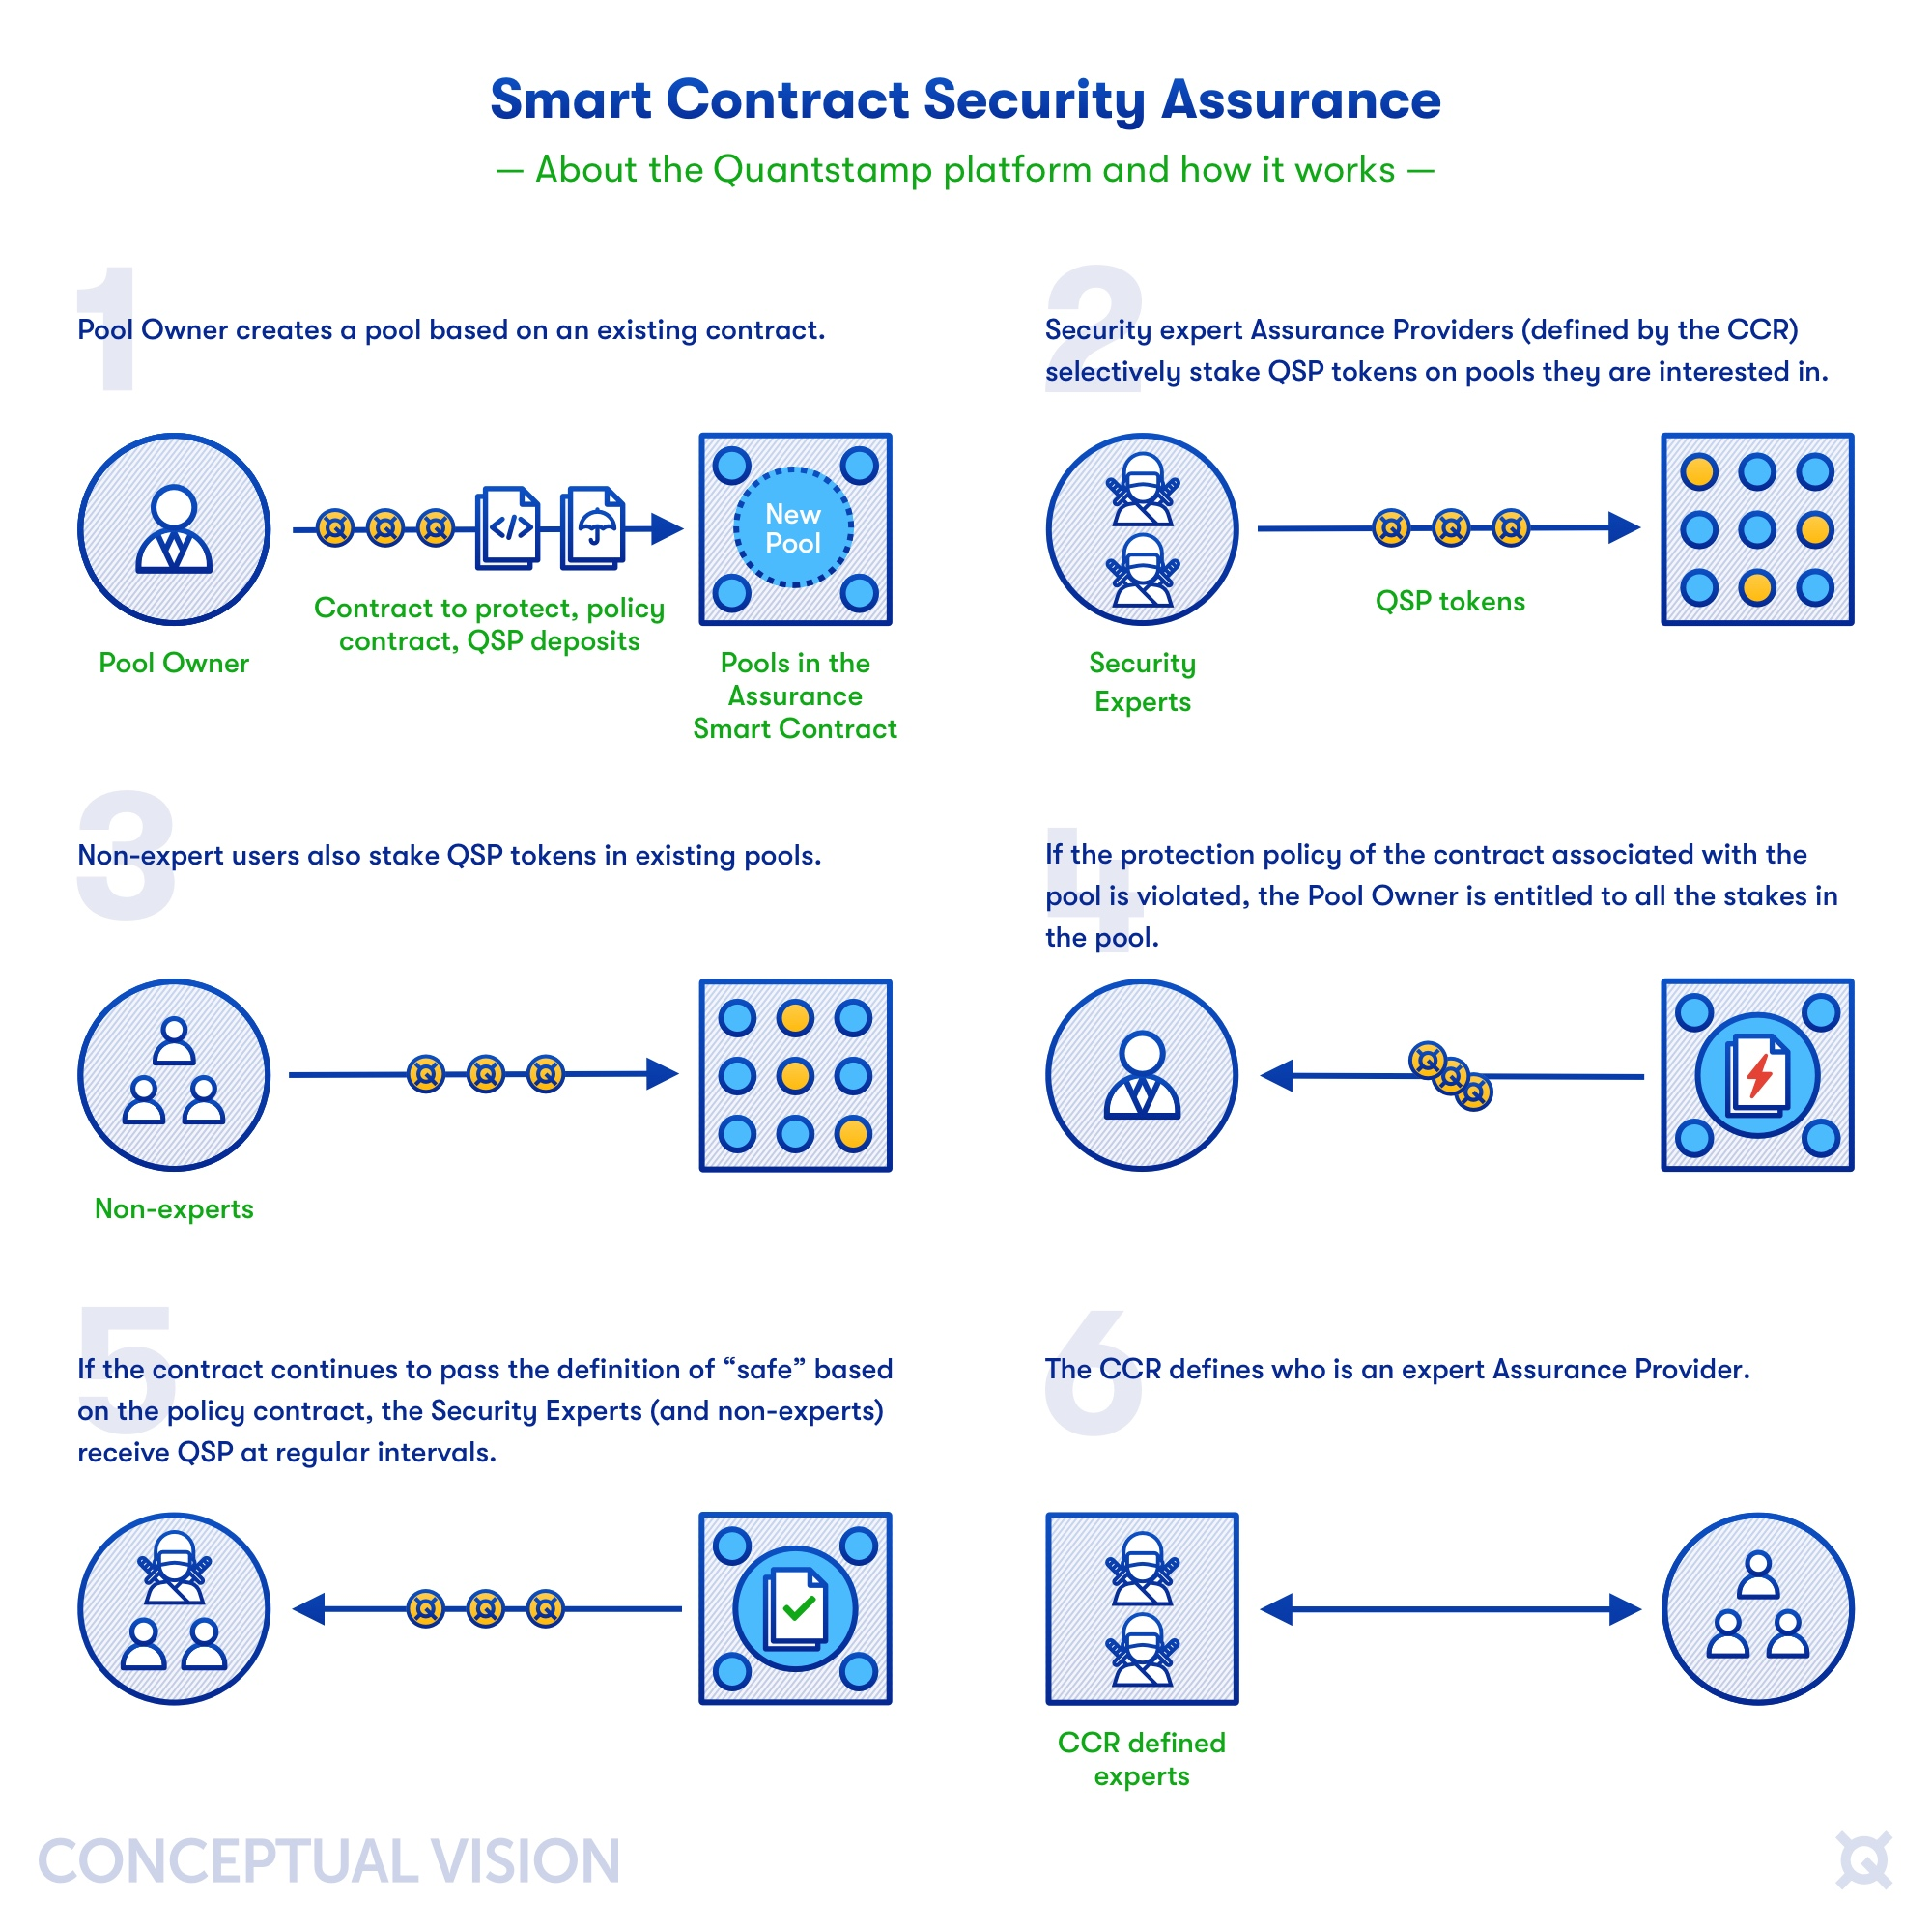 Introducing the Quantstamp Security Assurance Protocol